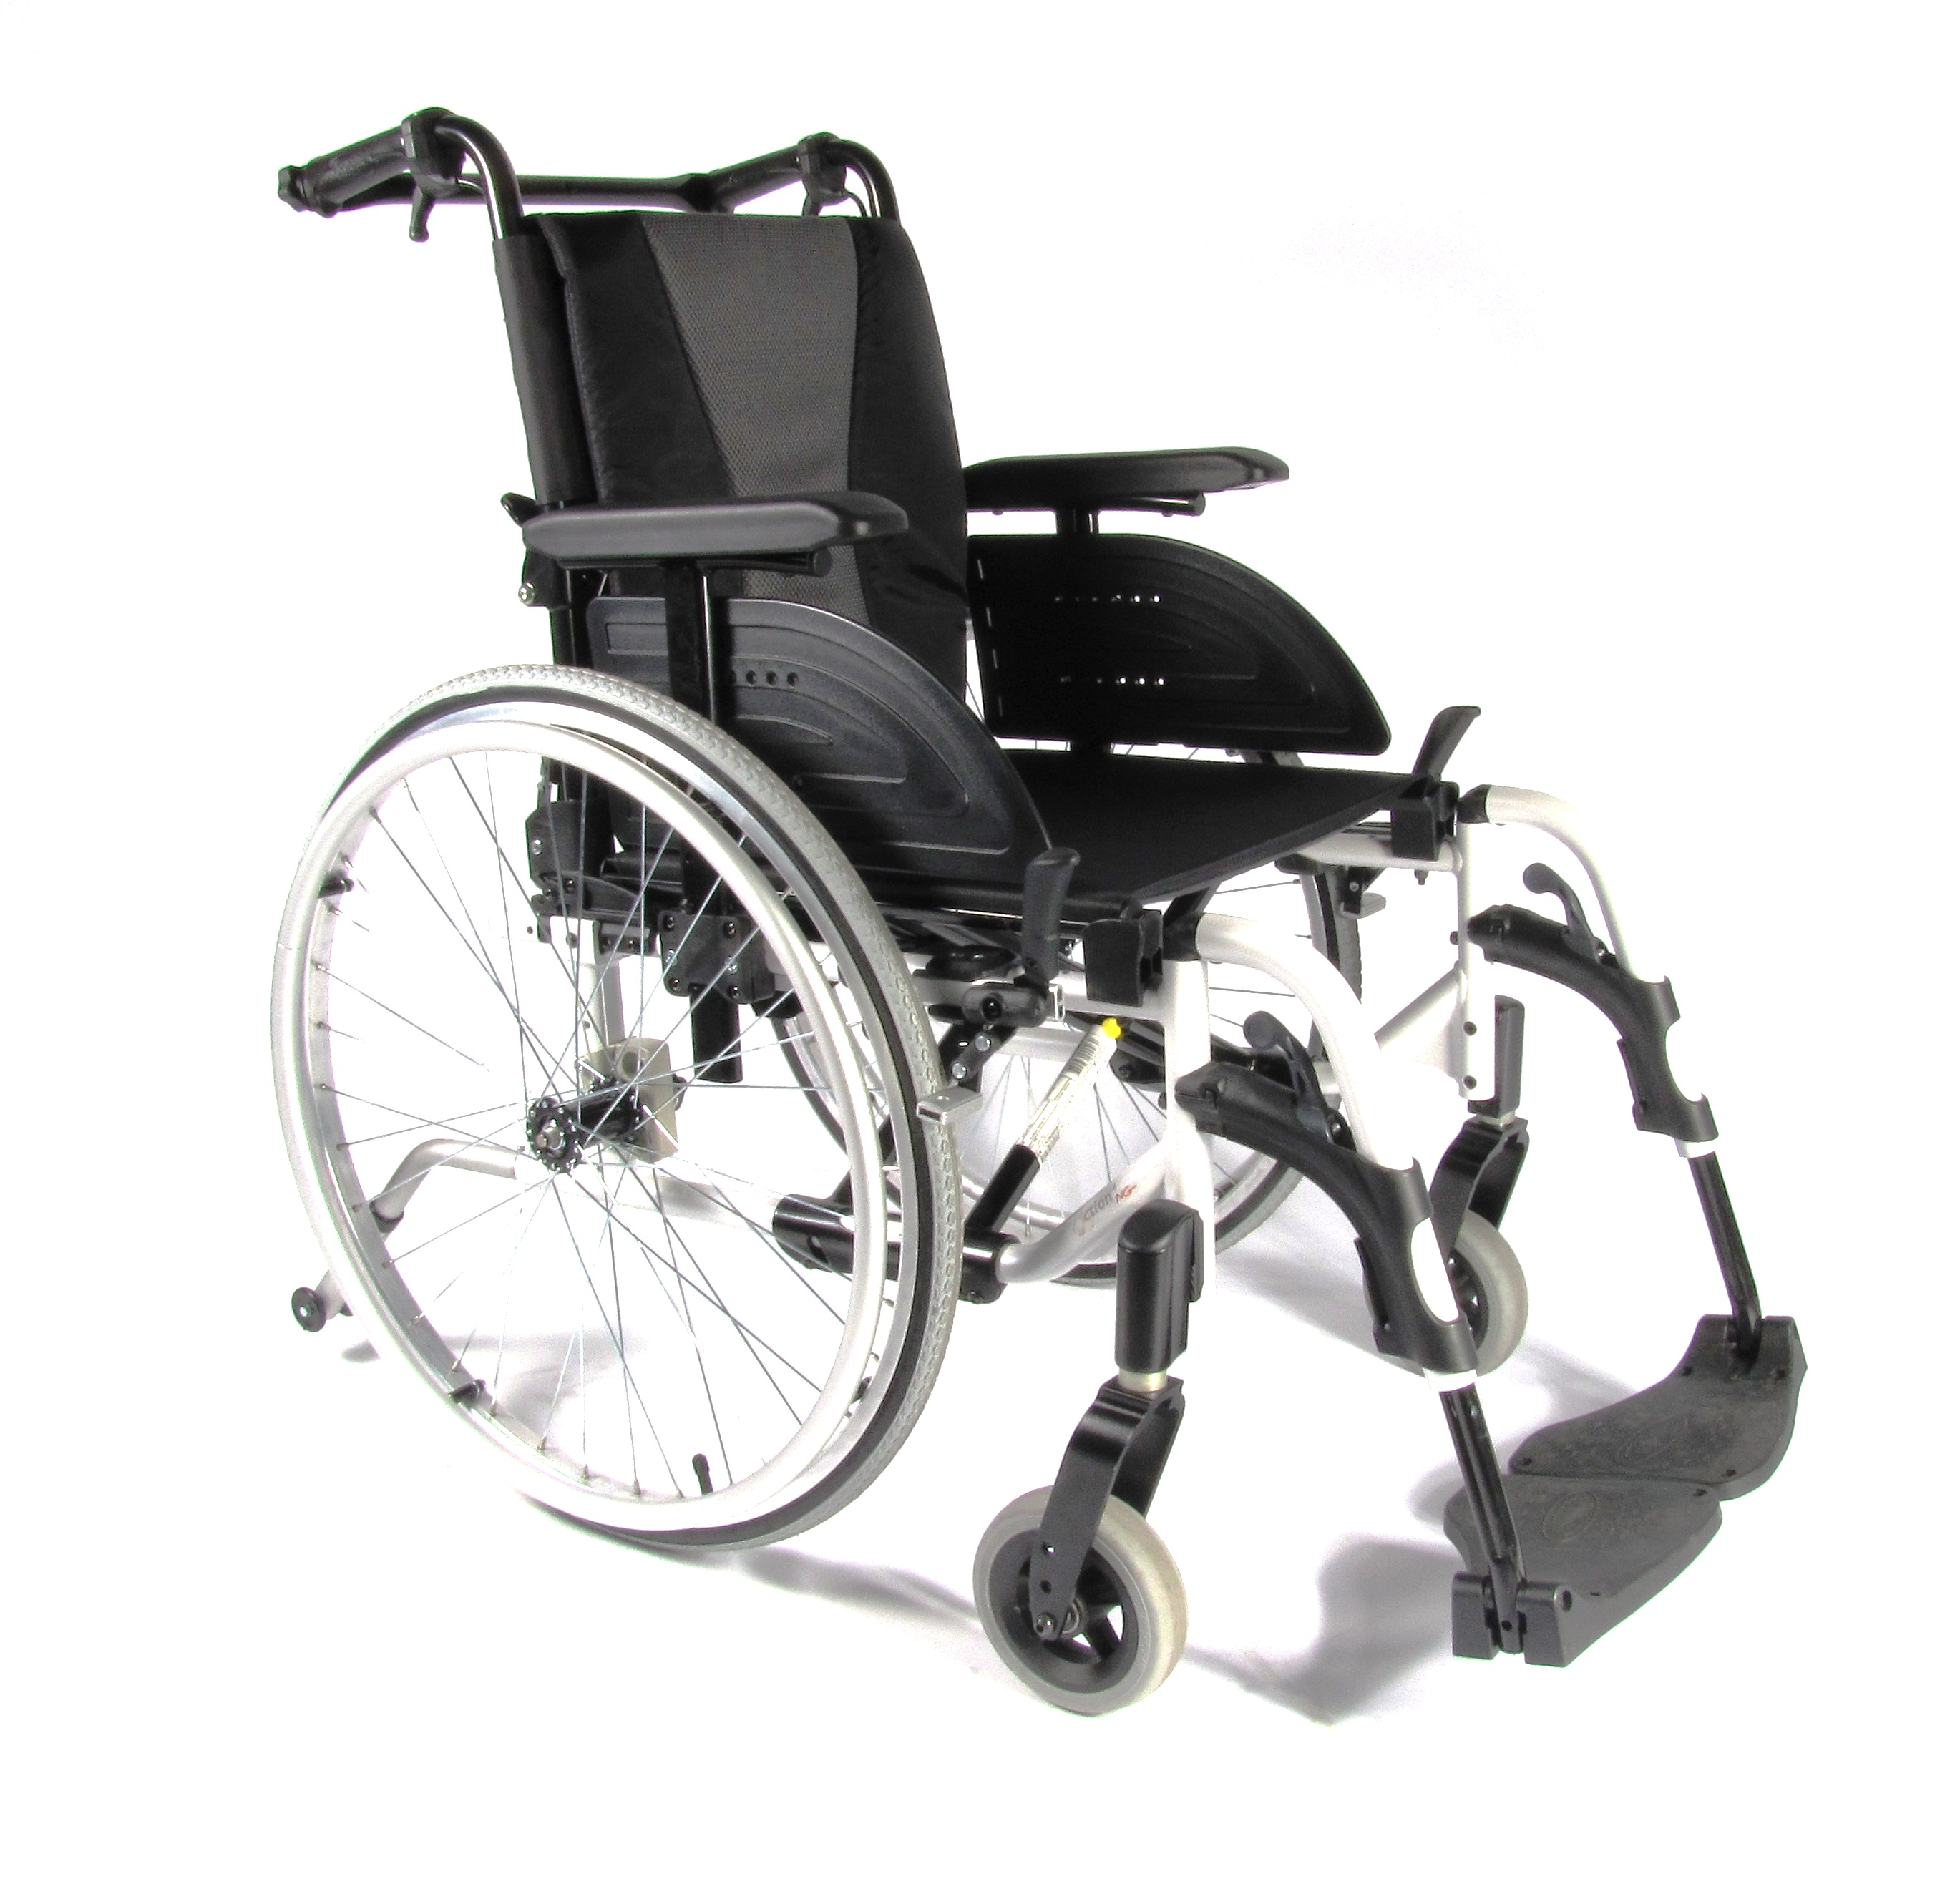 Standard Configurable Manual Wheelchairs Midshires